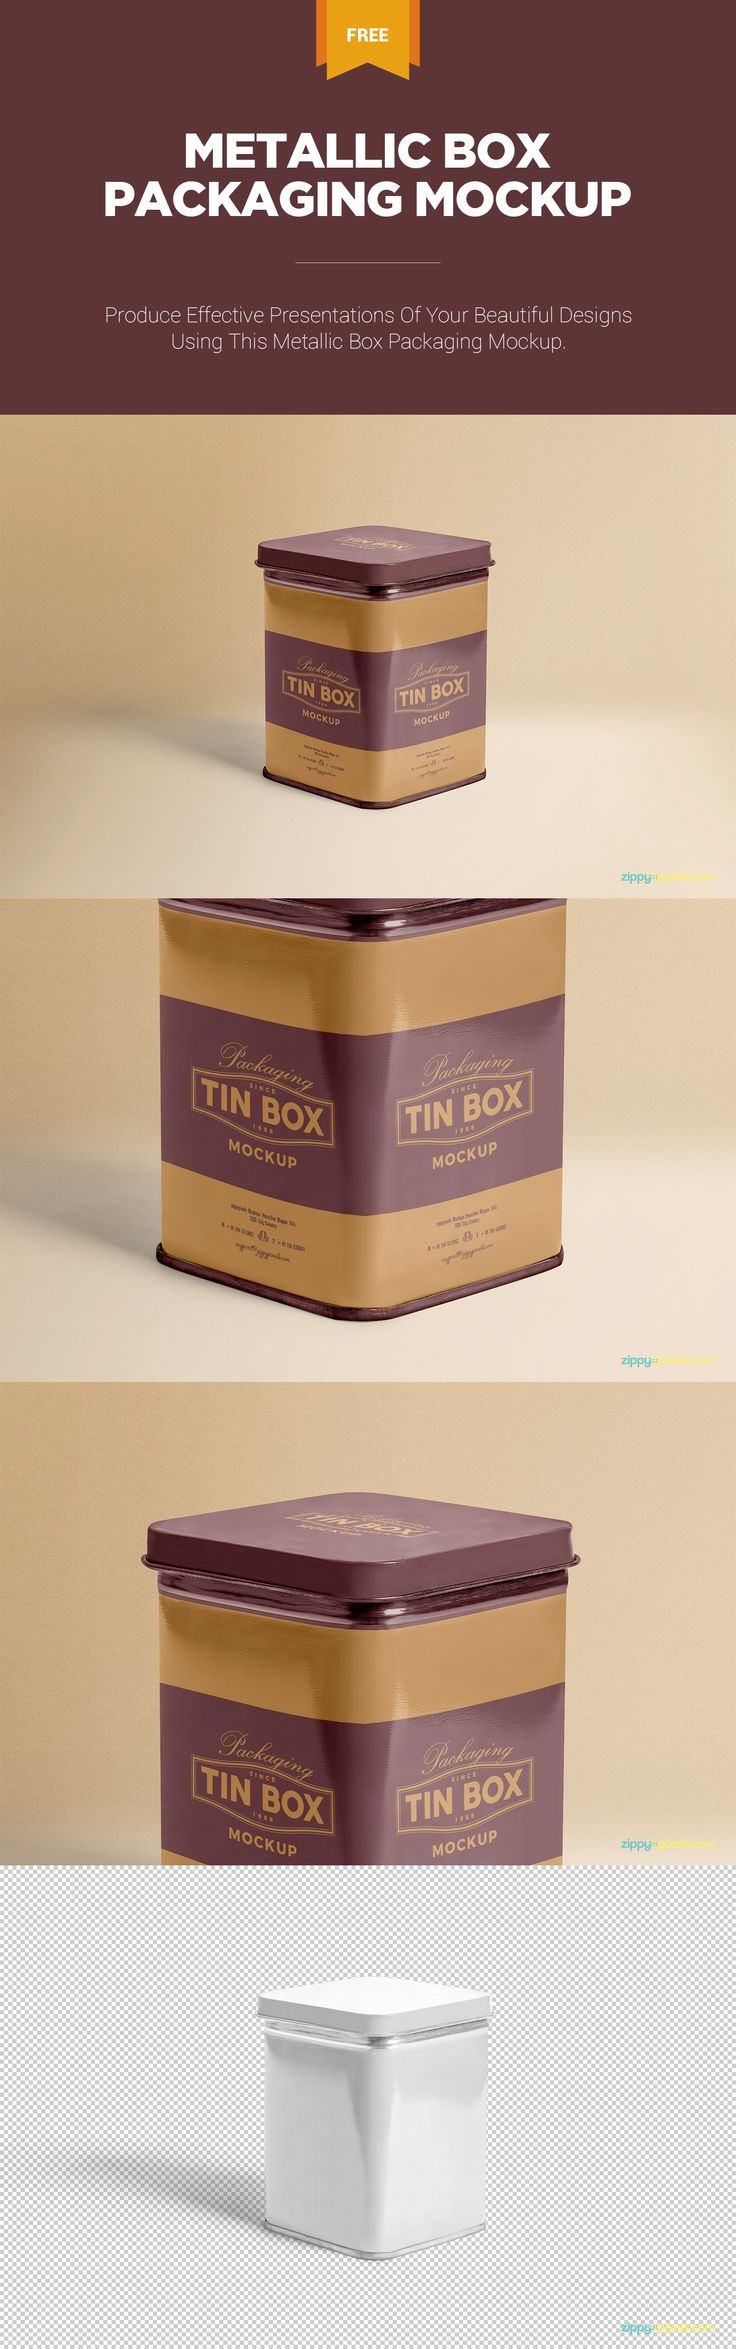 Make infinite presentations of your beautiful designs using this free mockup #free #freebie #mockup #box #packaging #psd #photoshop #tin #metal #airtight